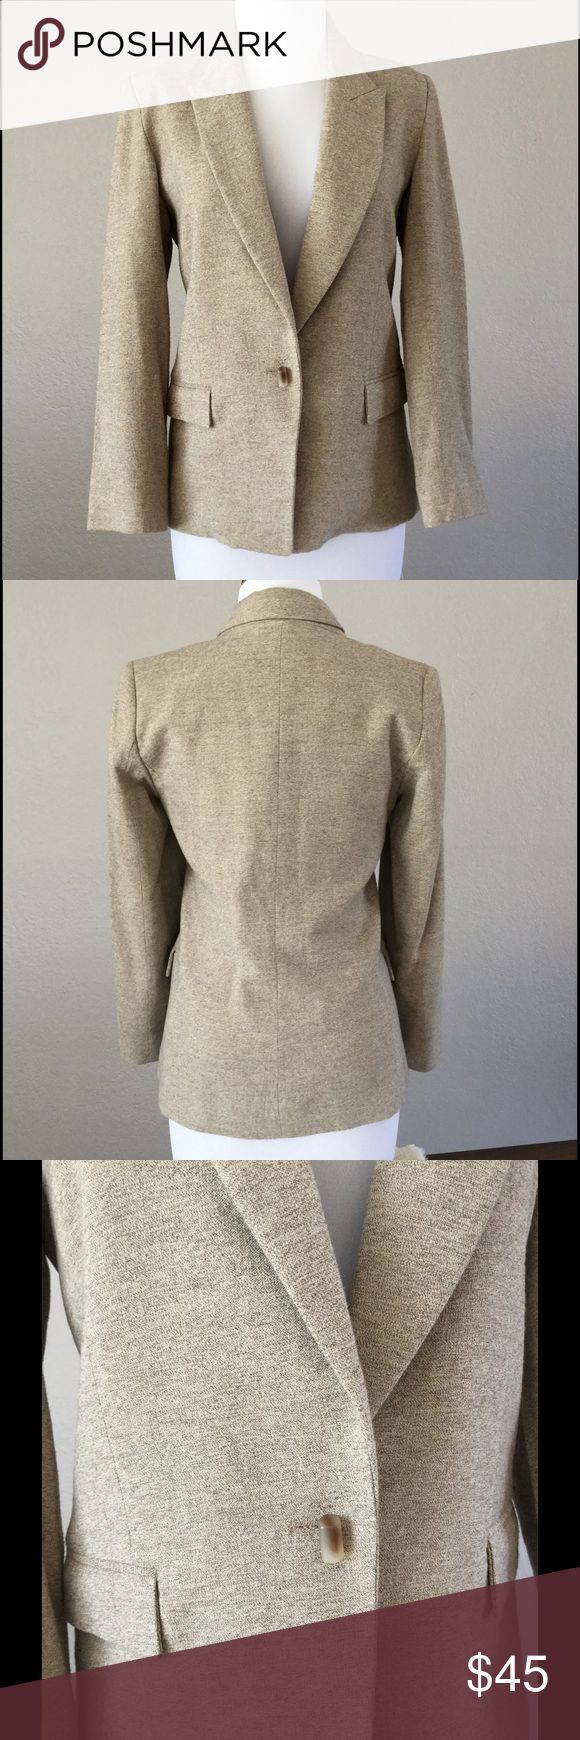 french tan blazer worn only once no stains or rips this is a french